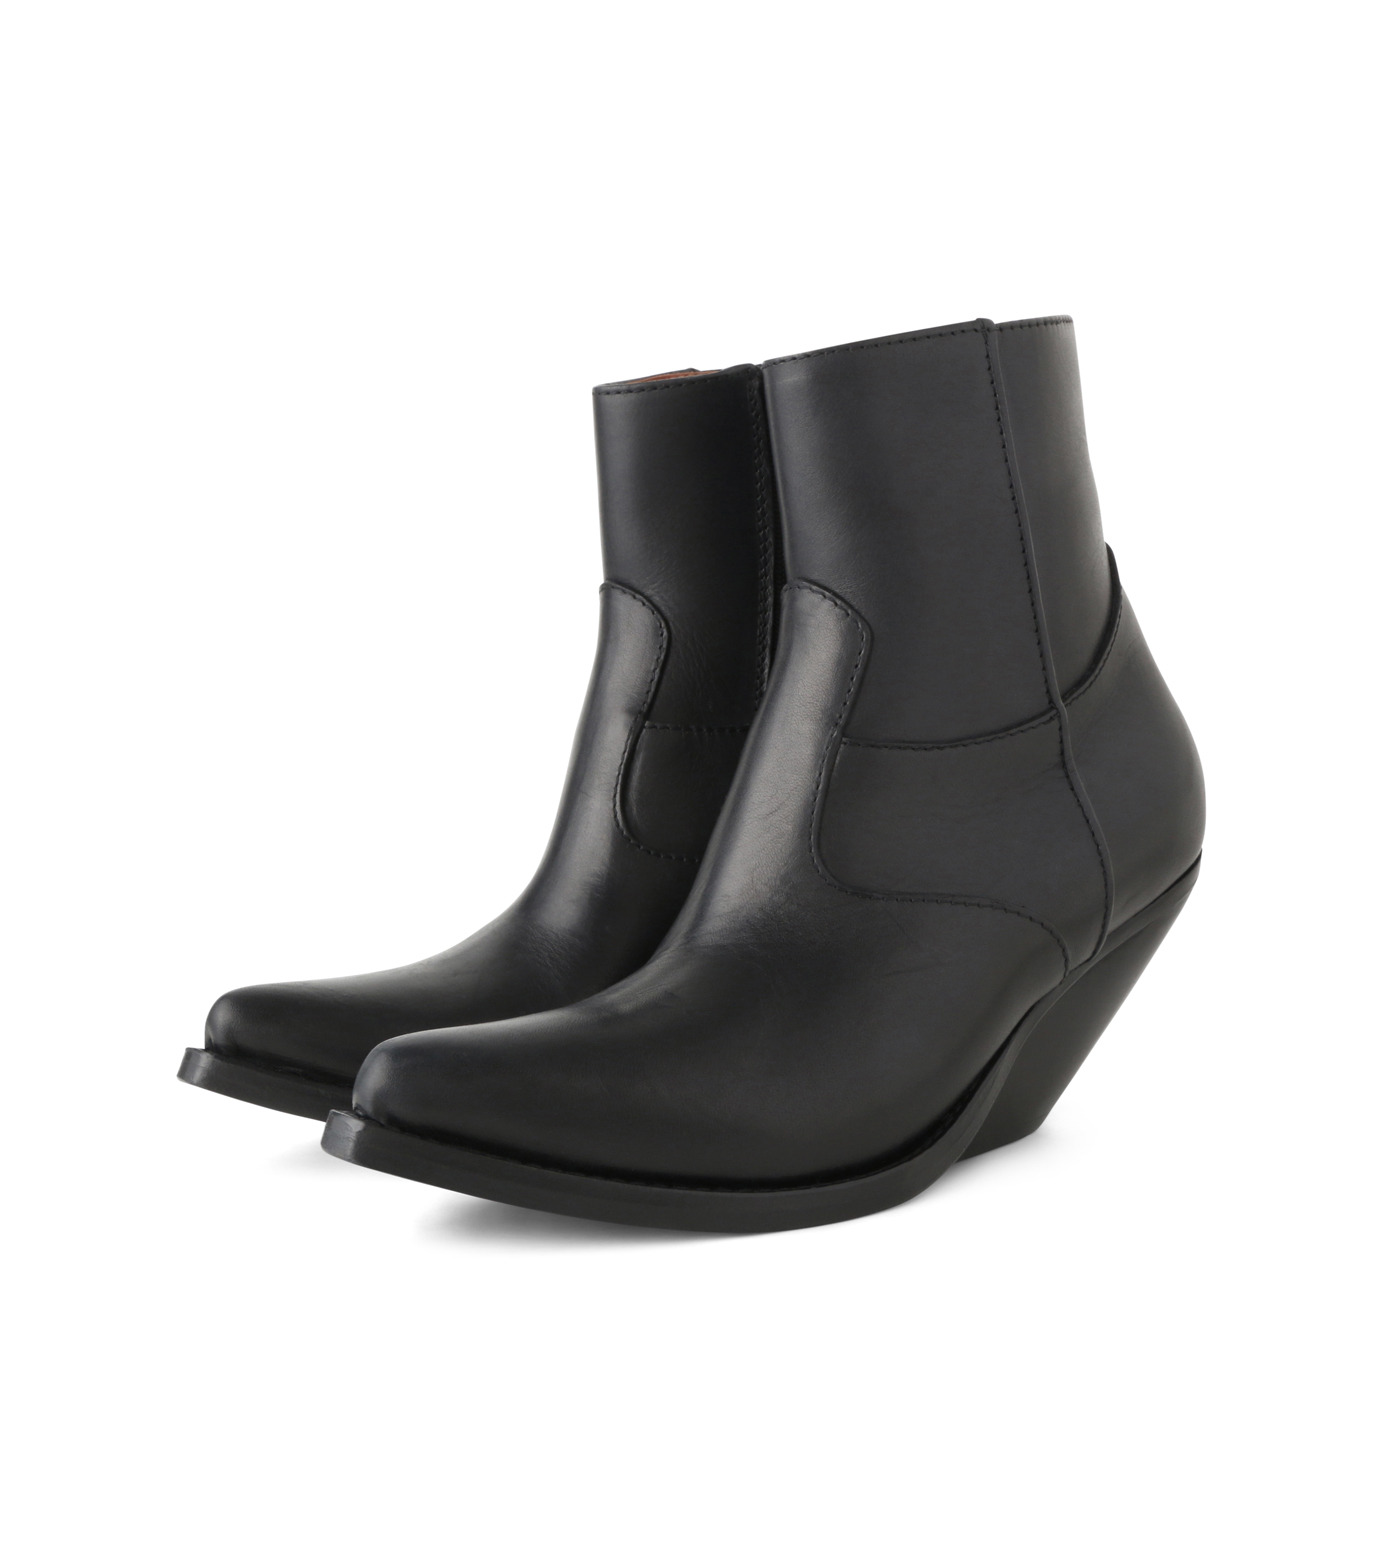 VETEMENTS(ヴェトモン)のCowboy Ankle Boots-BLACK(ブーツ/boots)-15796-13 拡大詳細画像3